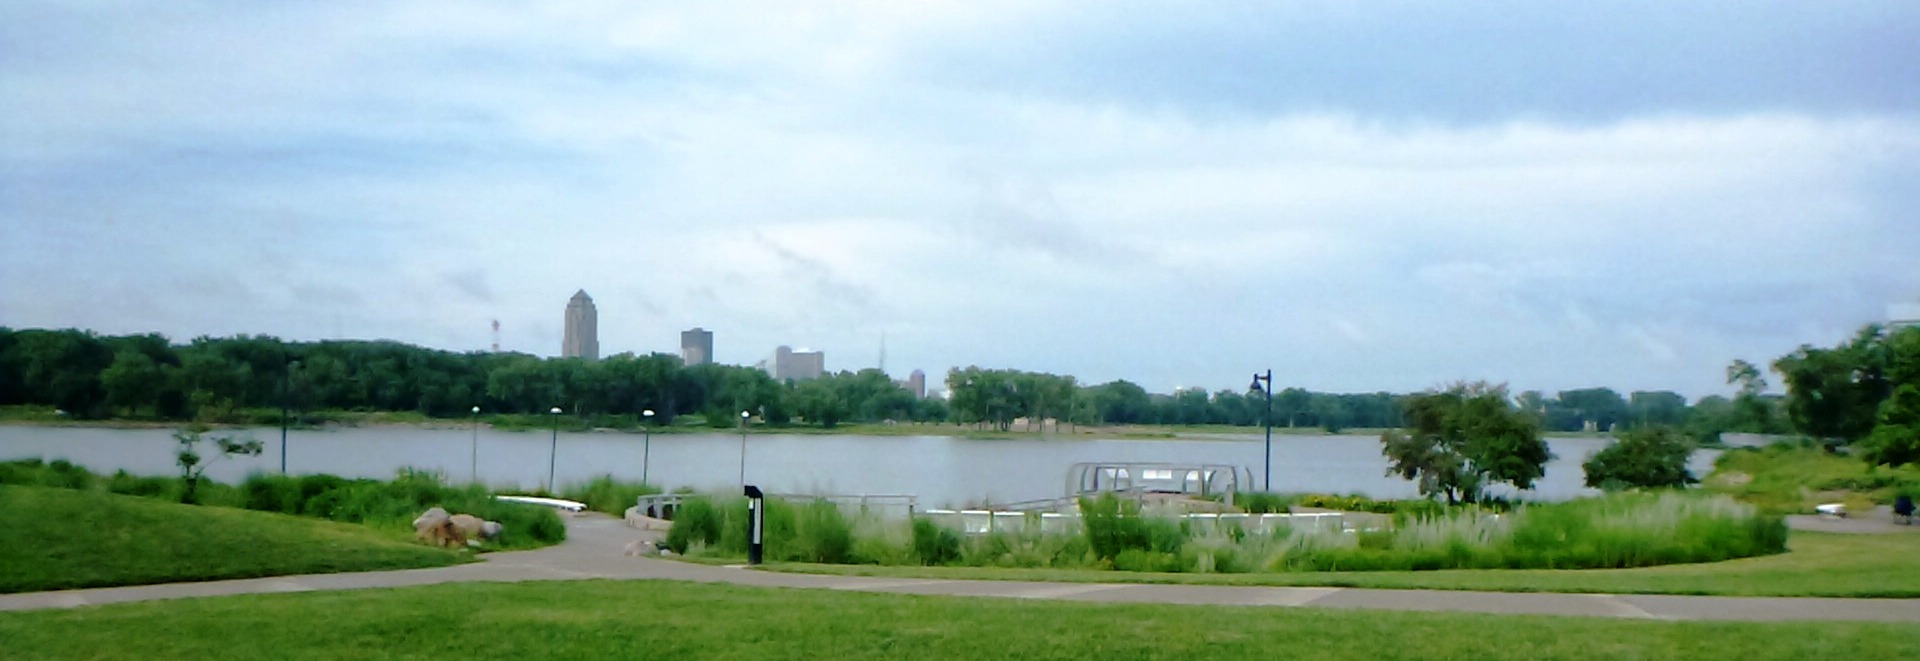 Gray's Lake, Des Moines, Iowa